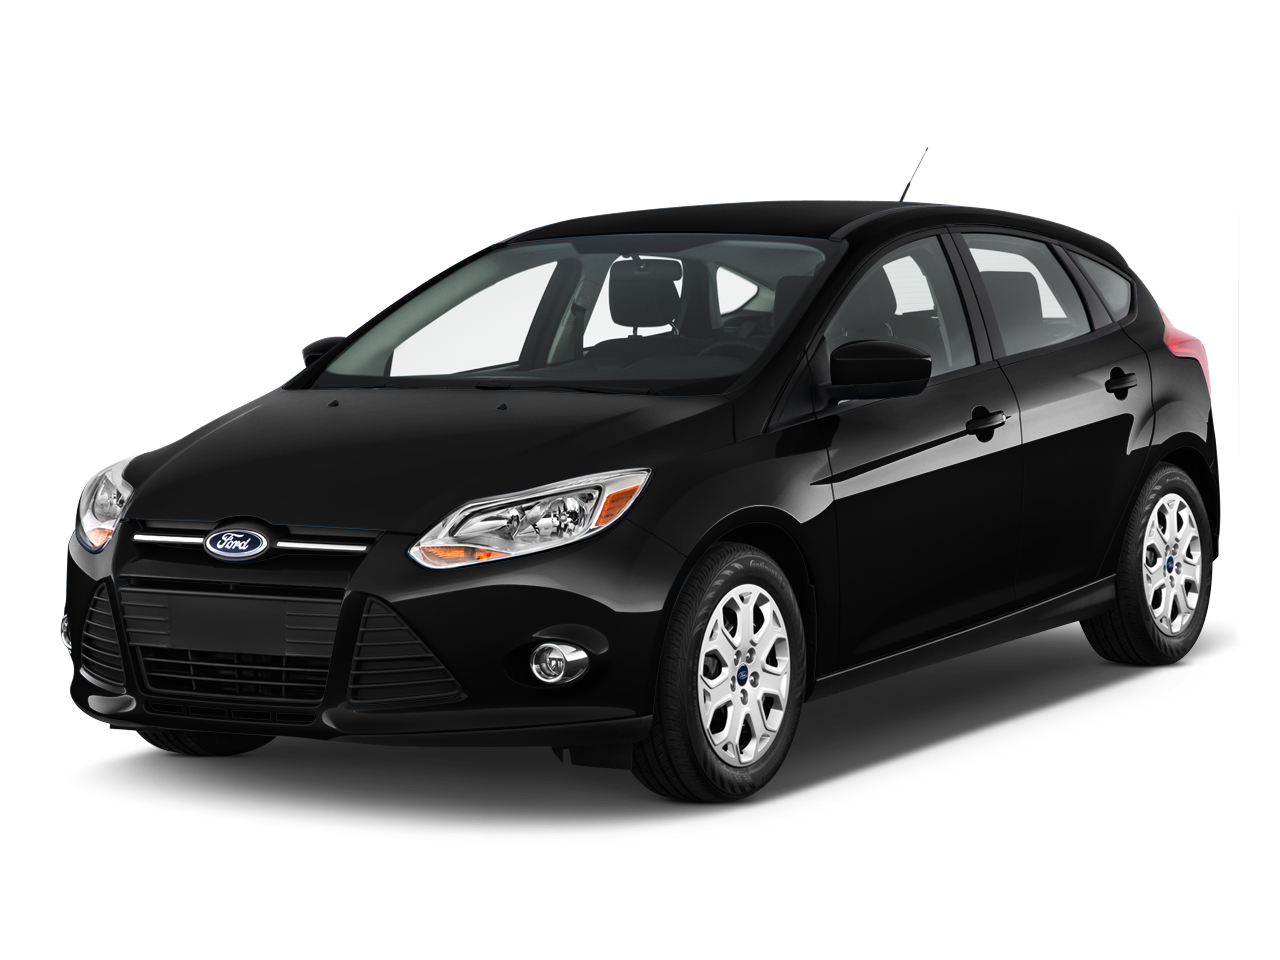 used 2014 ford focus titanium near oklahoma city ok david stanley. Cars Review. Best American Auto & Cars Review